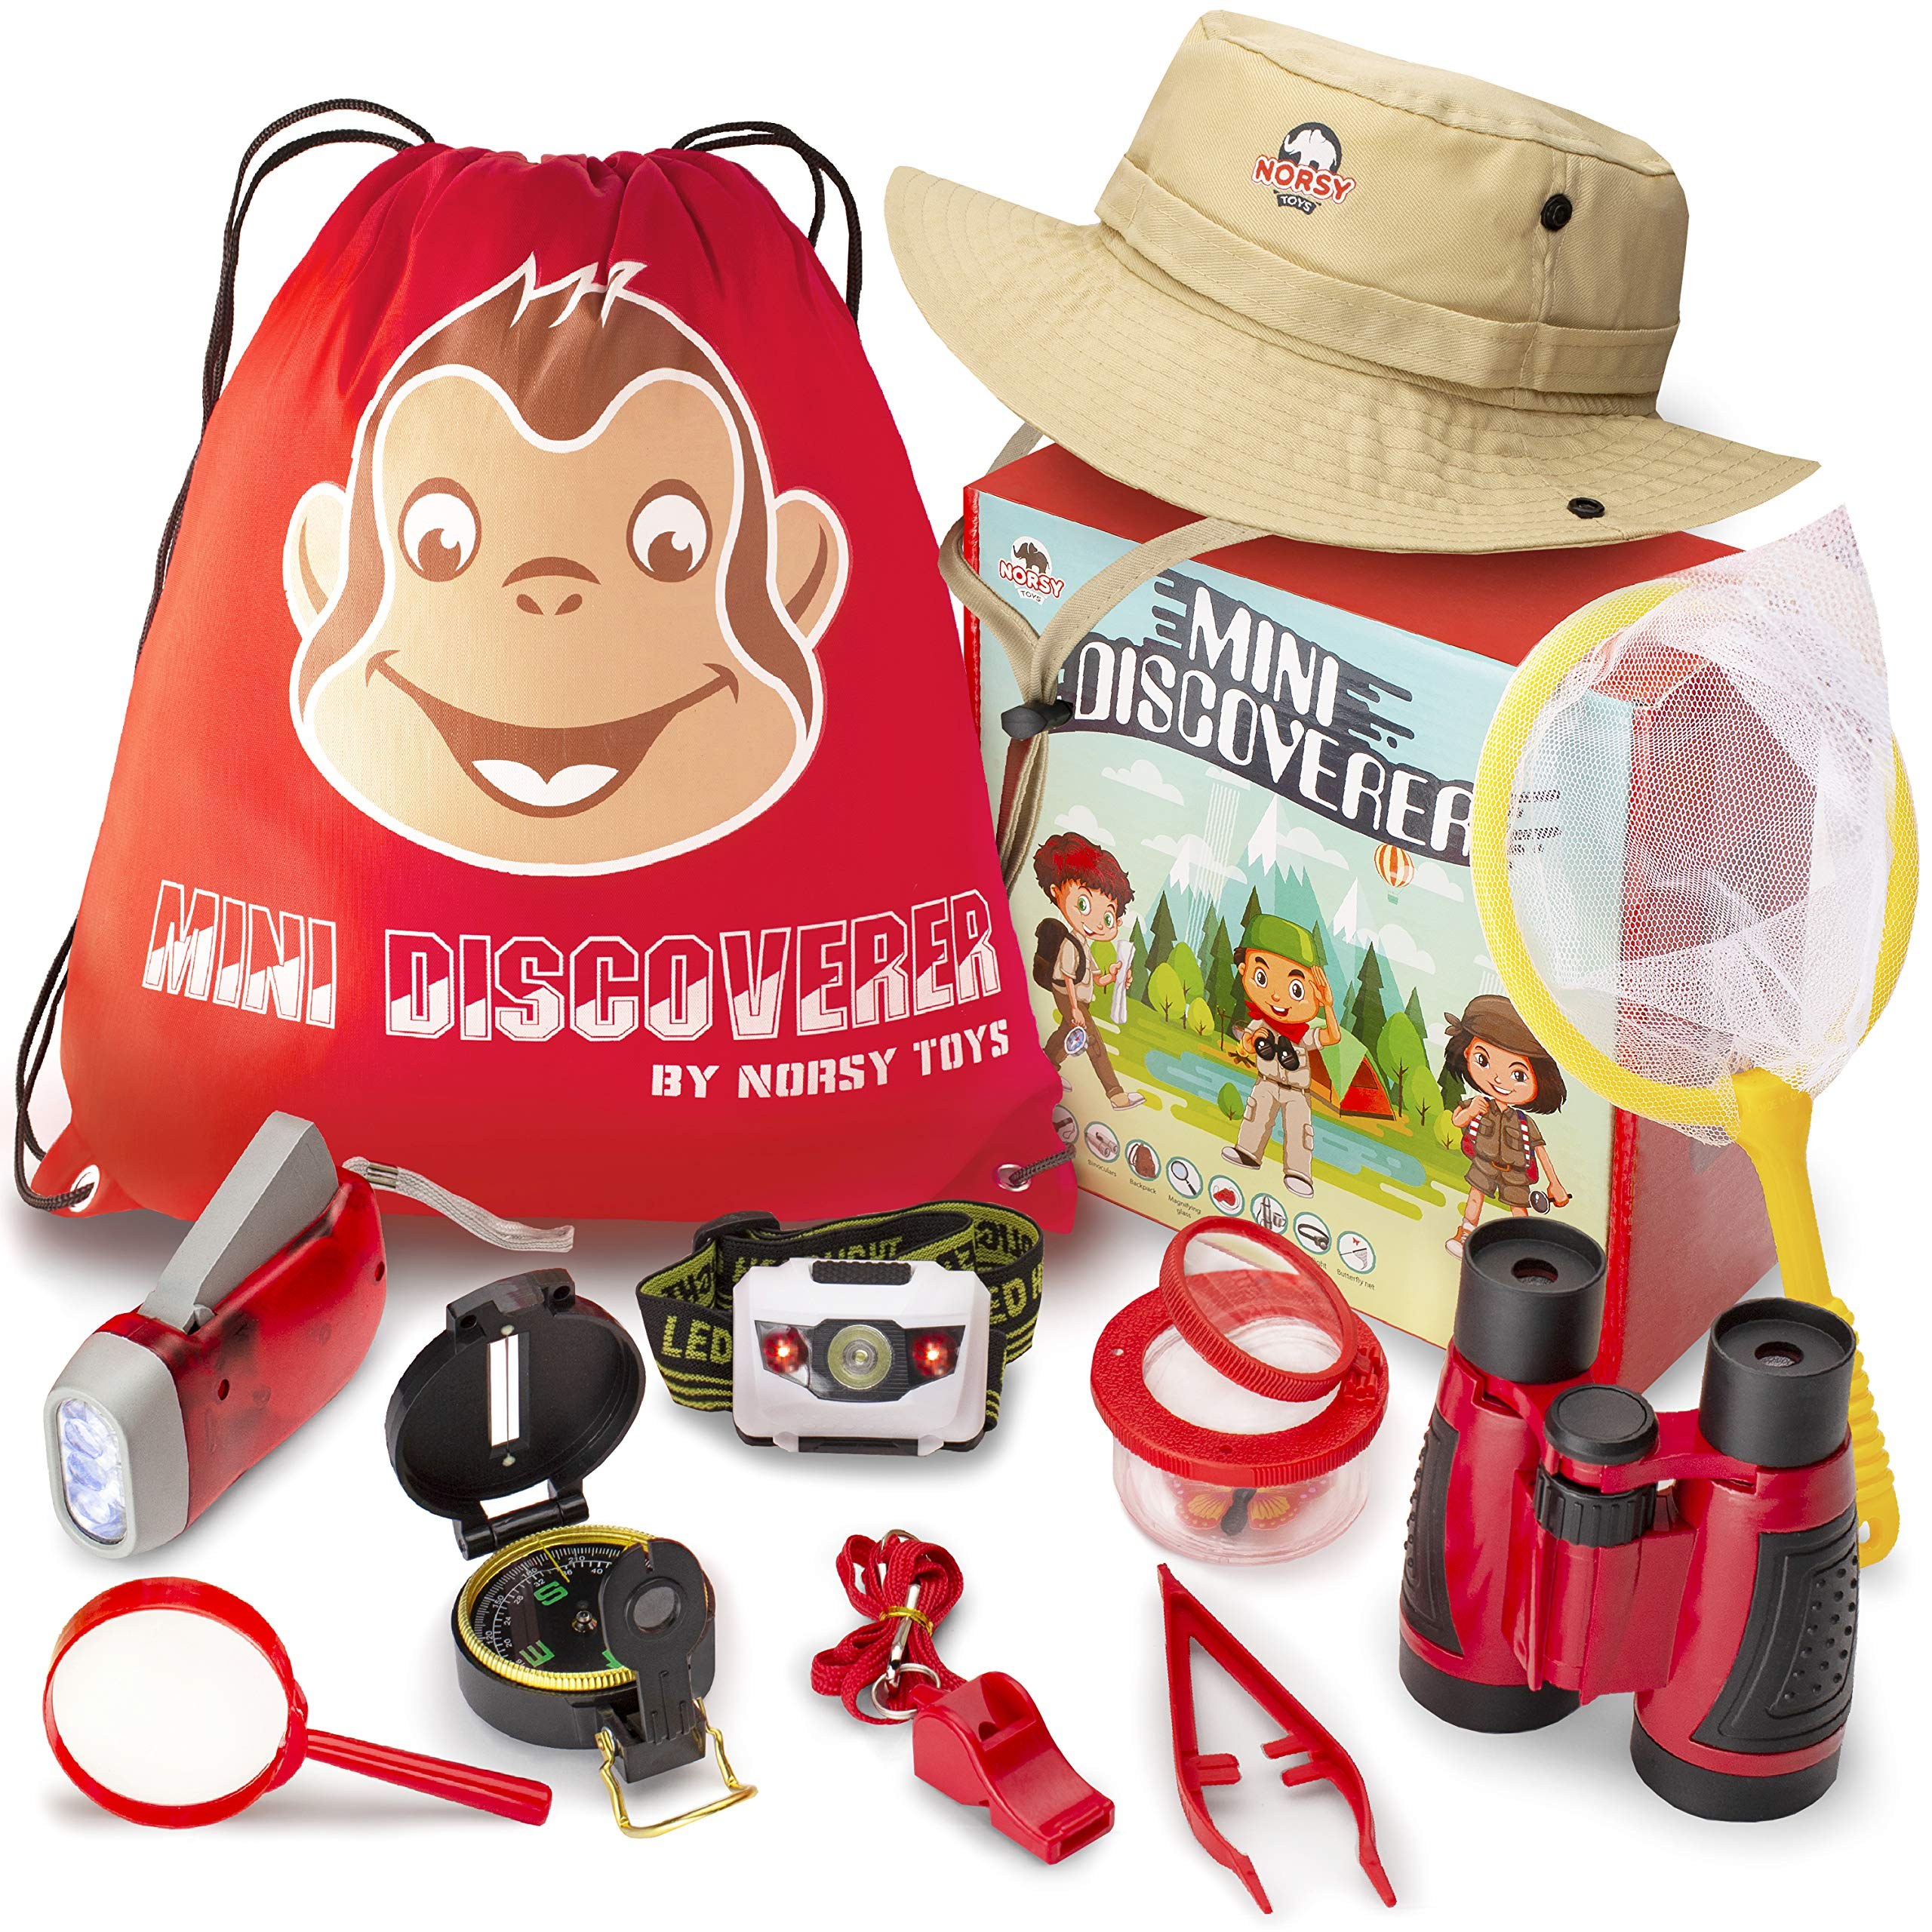 Norsy Toys - Kids Explorer Kit - Kids Binoculars | Outdoor Exploration Set for Boys & Girls Age 3-12 year old - Great Gifts for Your Outdoor Lover Grandkids and Nephew's Birthday, Christmas & Hiking by Norsy Toys